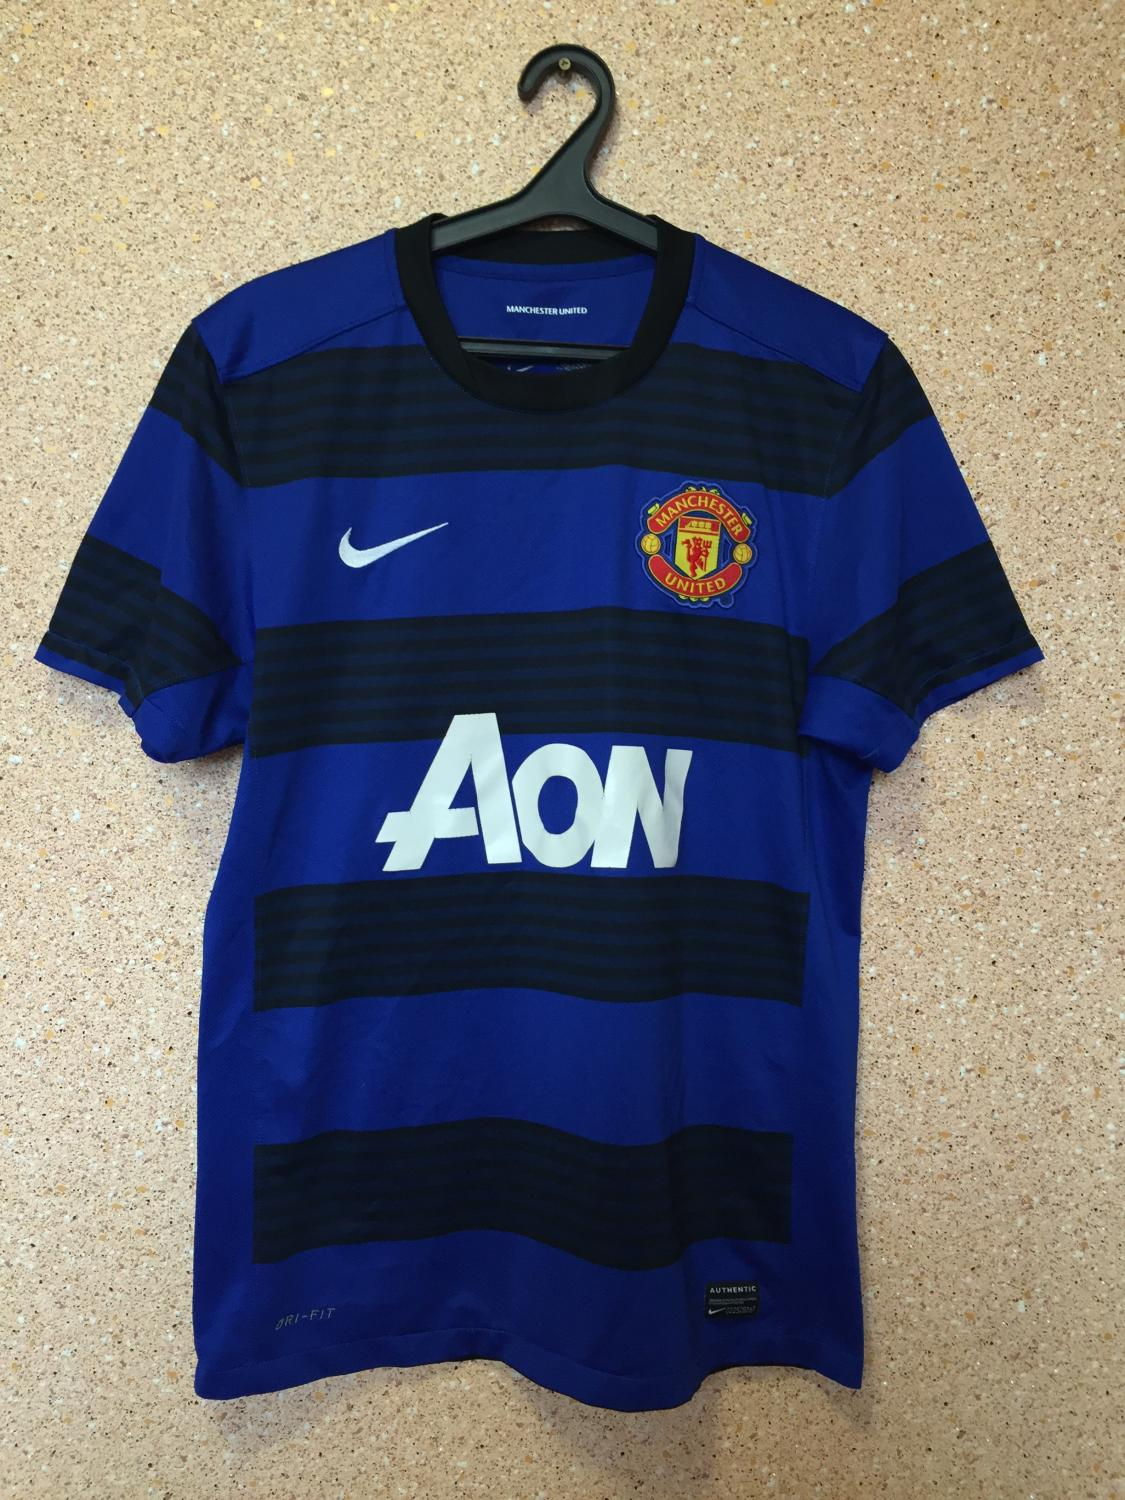 Manchester United Away football shirt 2011 - 2013. Sponsored by AON